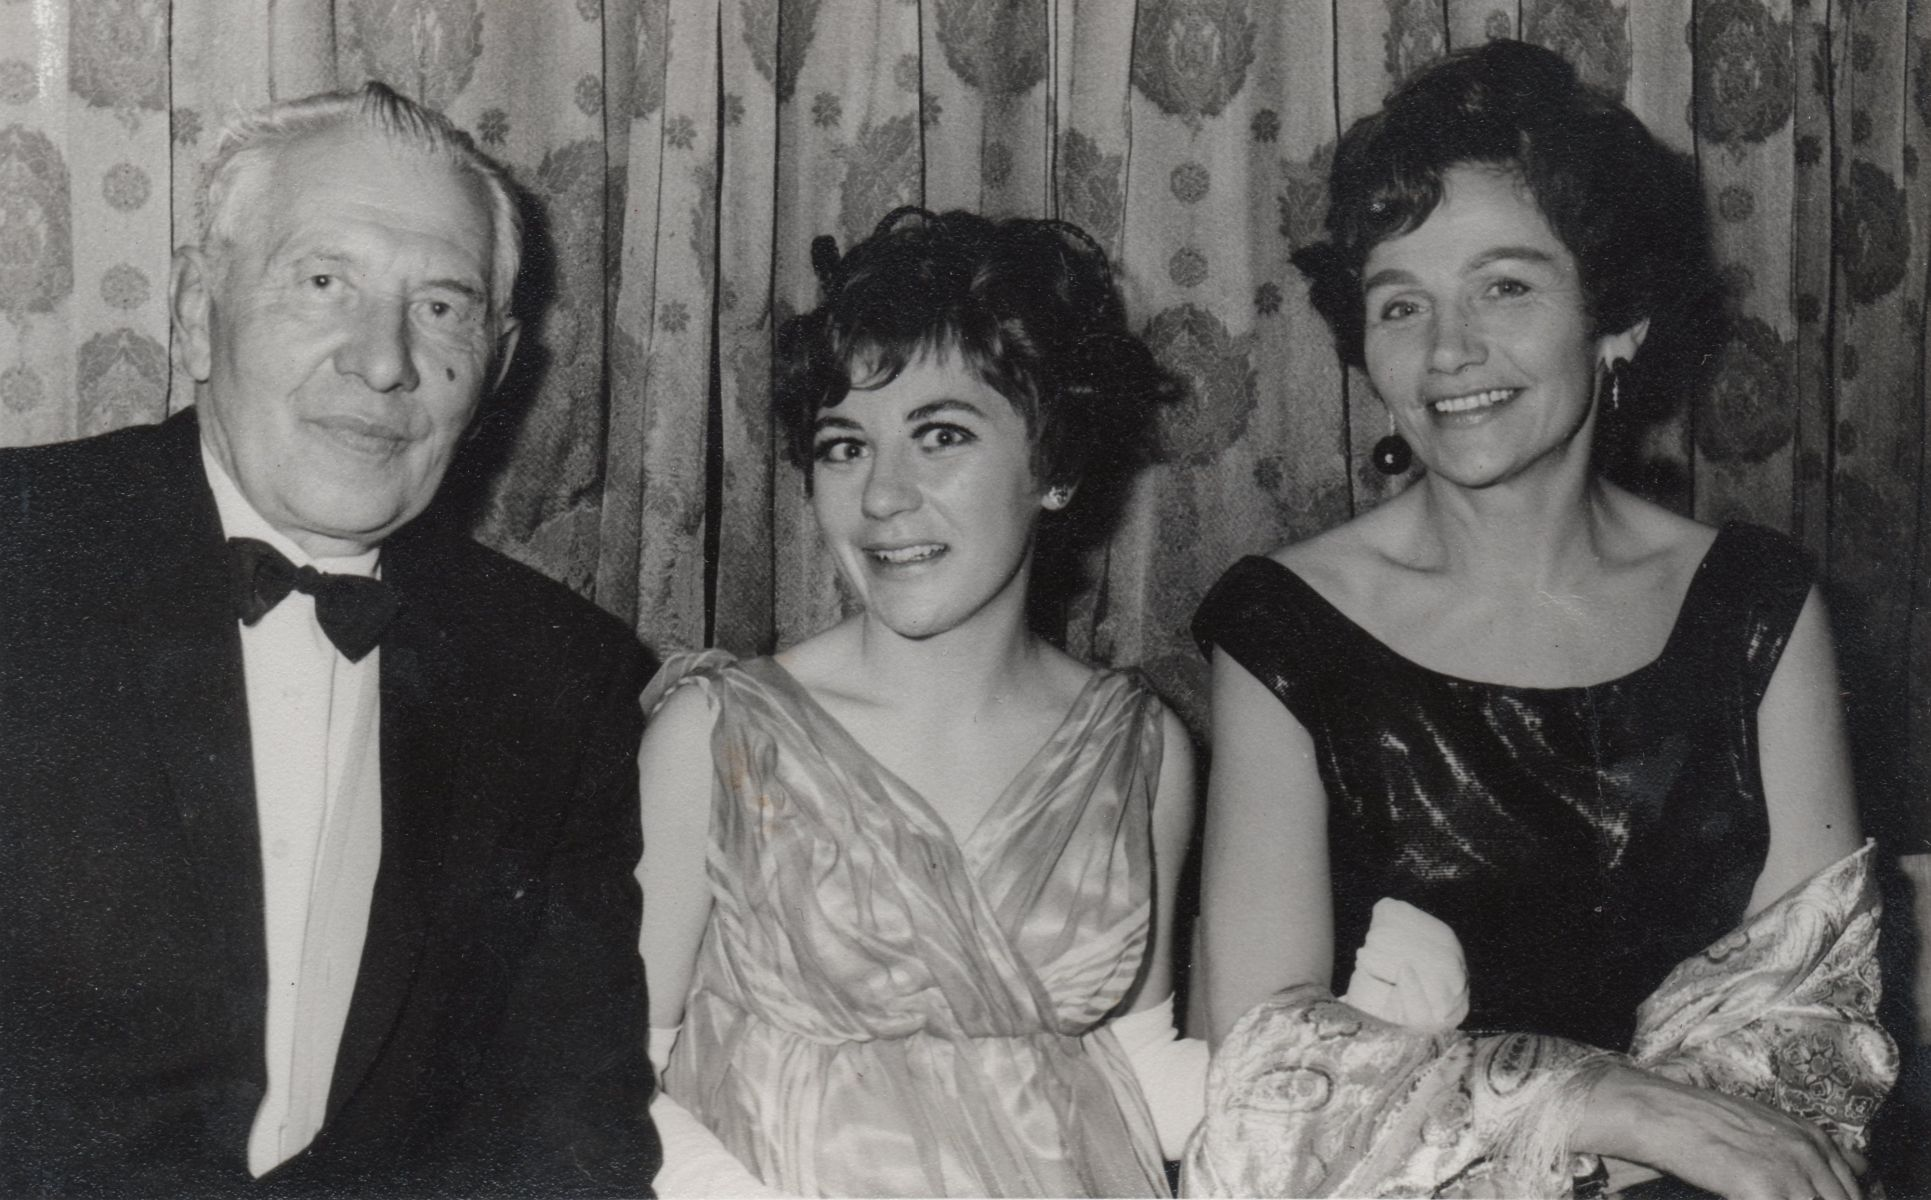 A black and white  photo of the family, Hania in the middle of her parents, all dressed in formal attire.